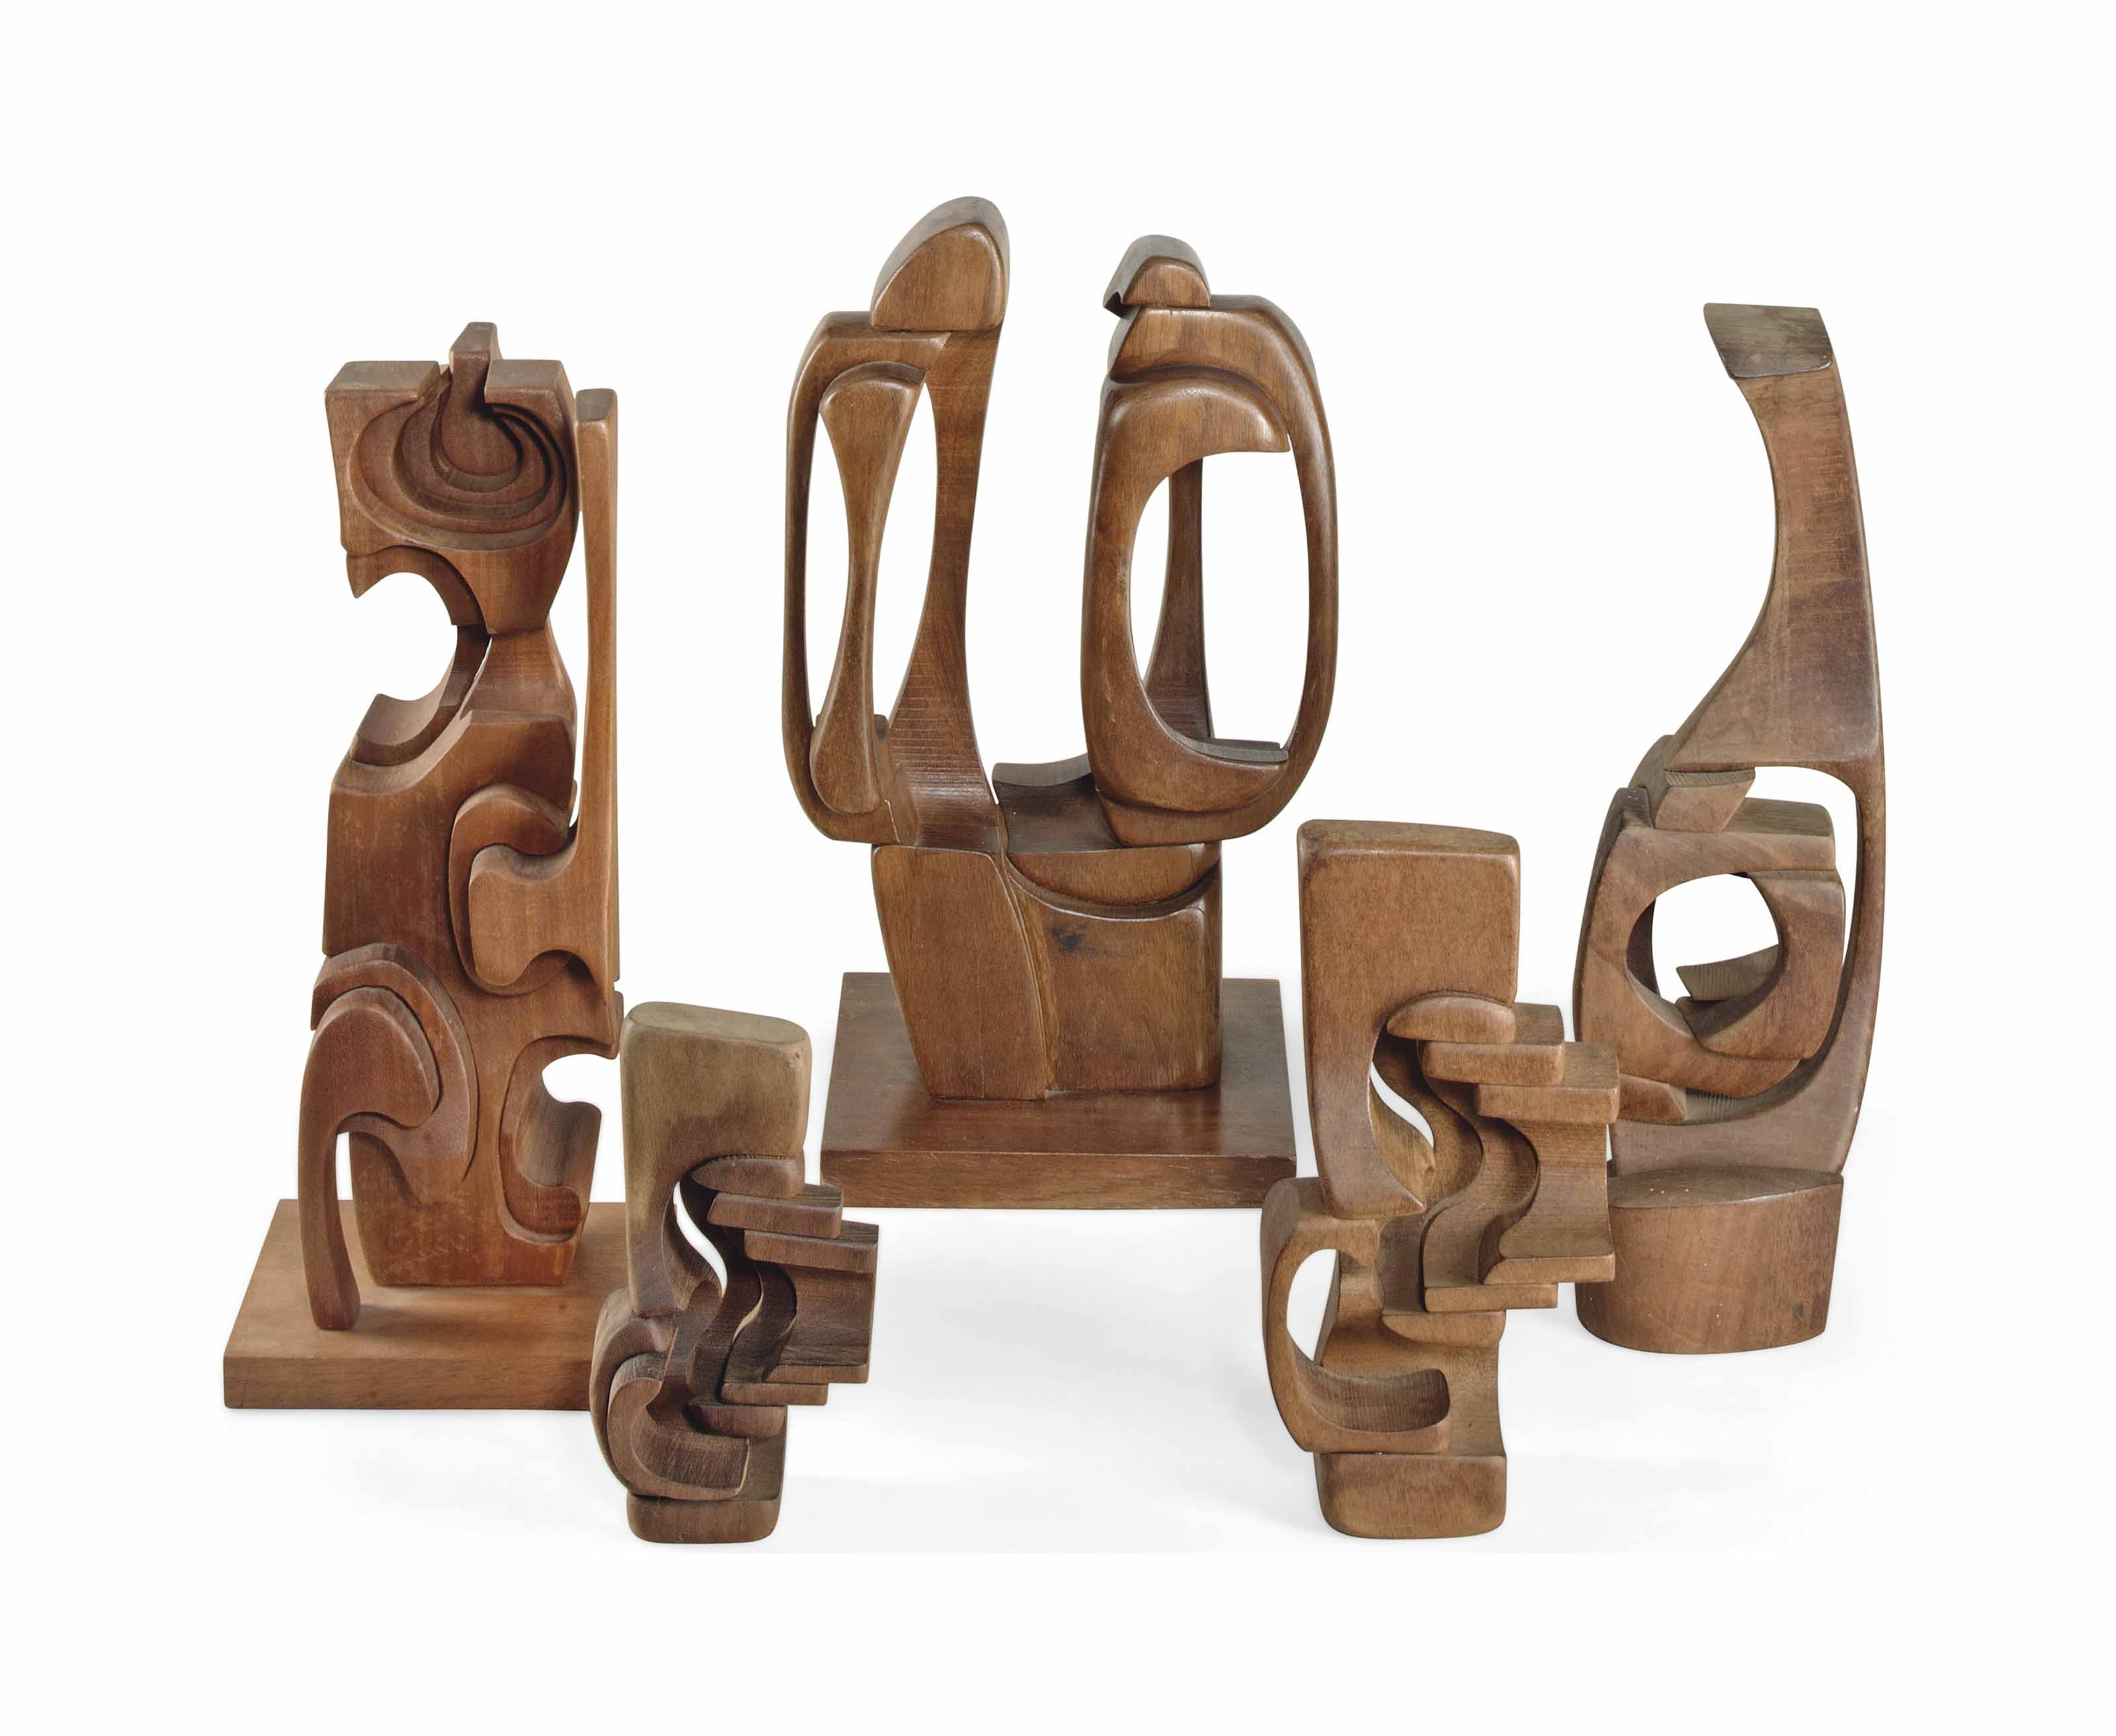 A GROUP OF FIVE BRIAN WILLSHER (b. 1930) ABSTRACT WOOD SCULPTURES